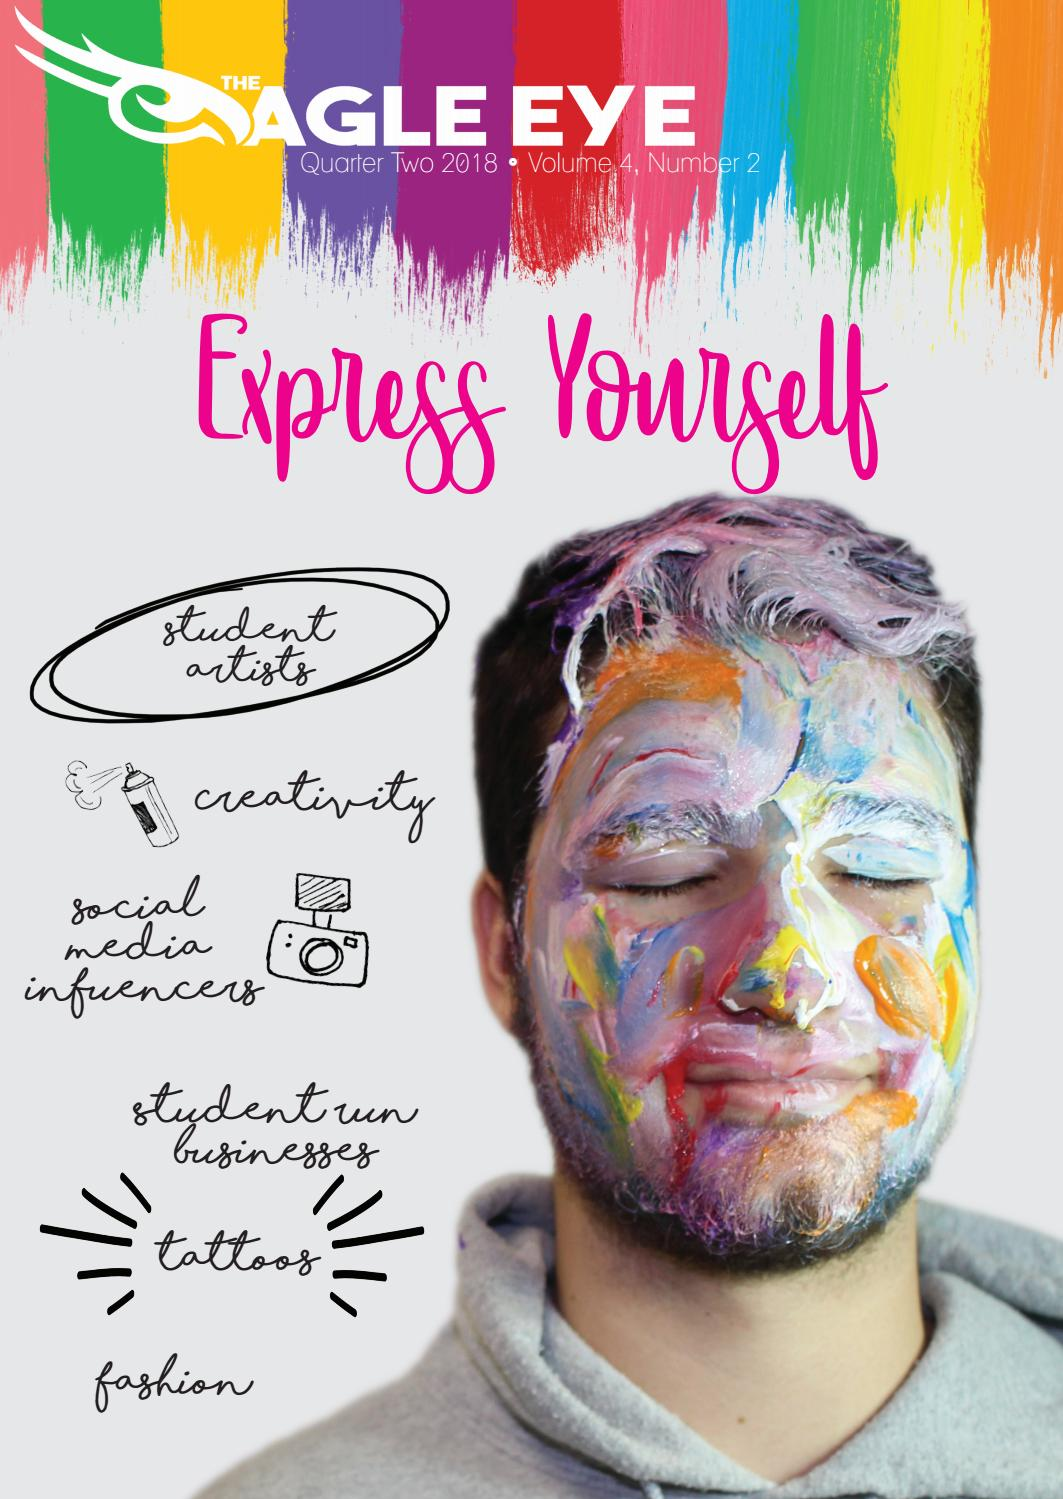 Express Yourself - The Eagle Eye Volume 4, Number 2 by The